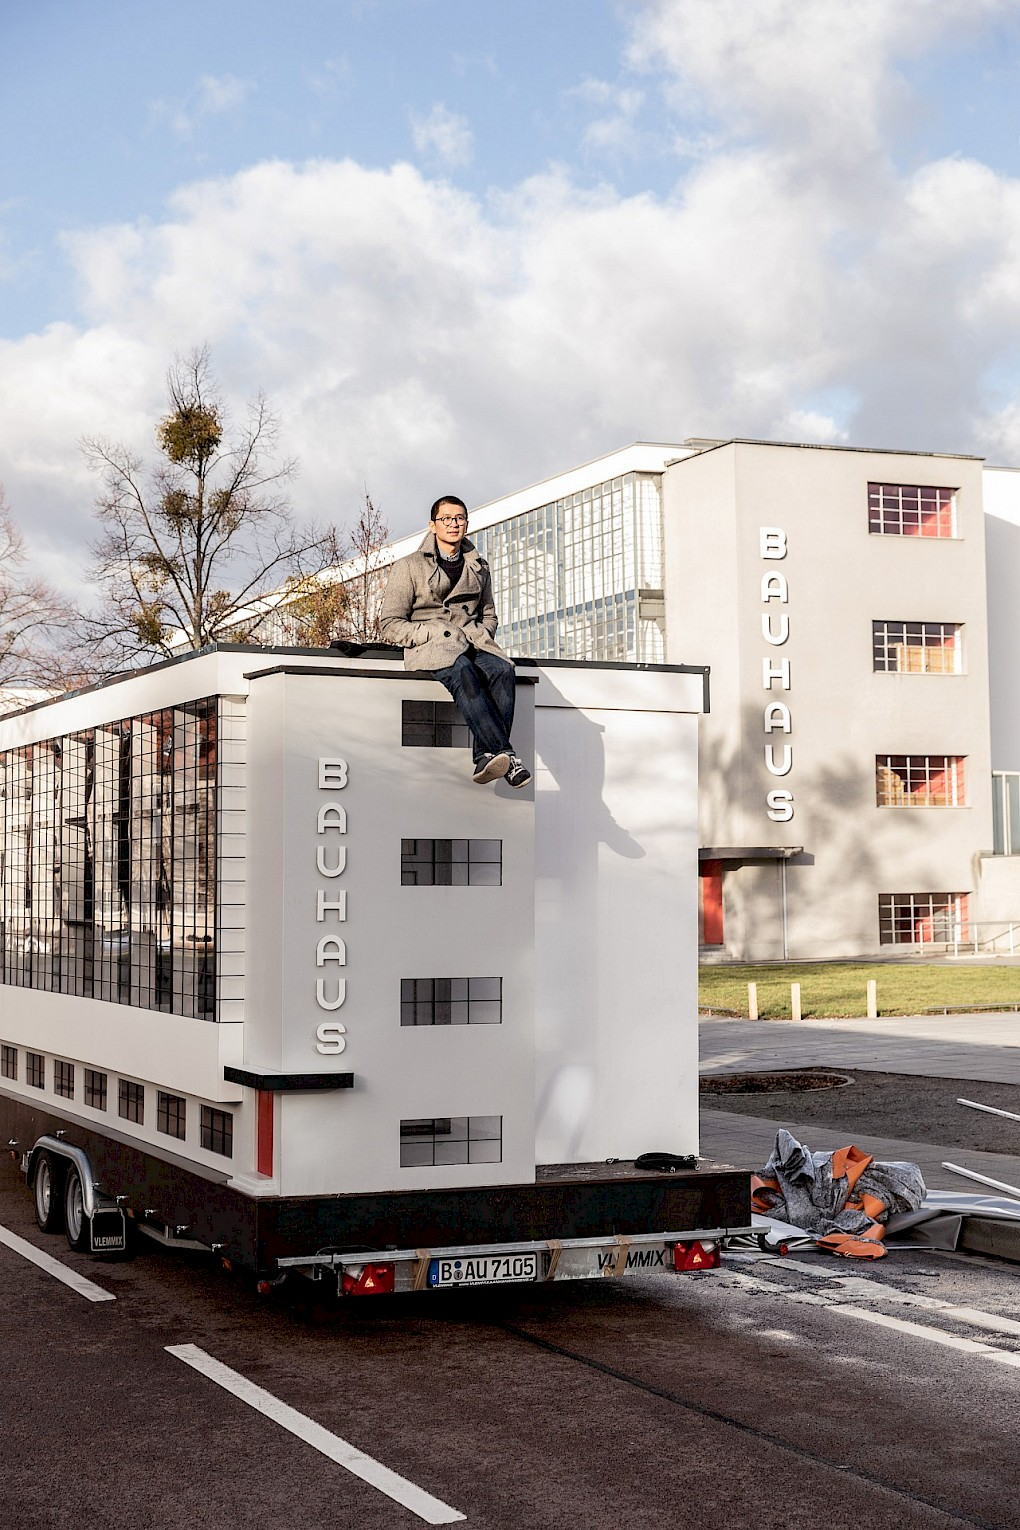 The Wohnmaschine, a tinyhouse version of the Dessau bauhaus conceived by Van Bo Le-Mentzel, in front of the original workshop wing. The miniature version will be home, platform, stage and library during the programme in Dessau | Photo: Mirko Mielke